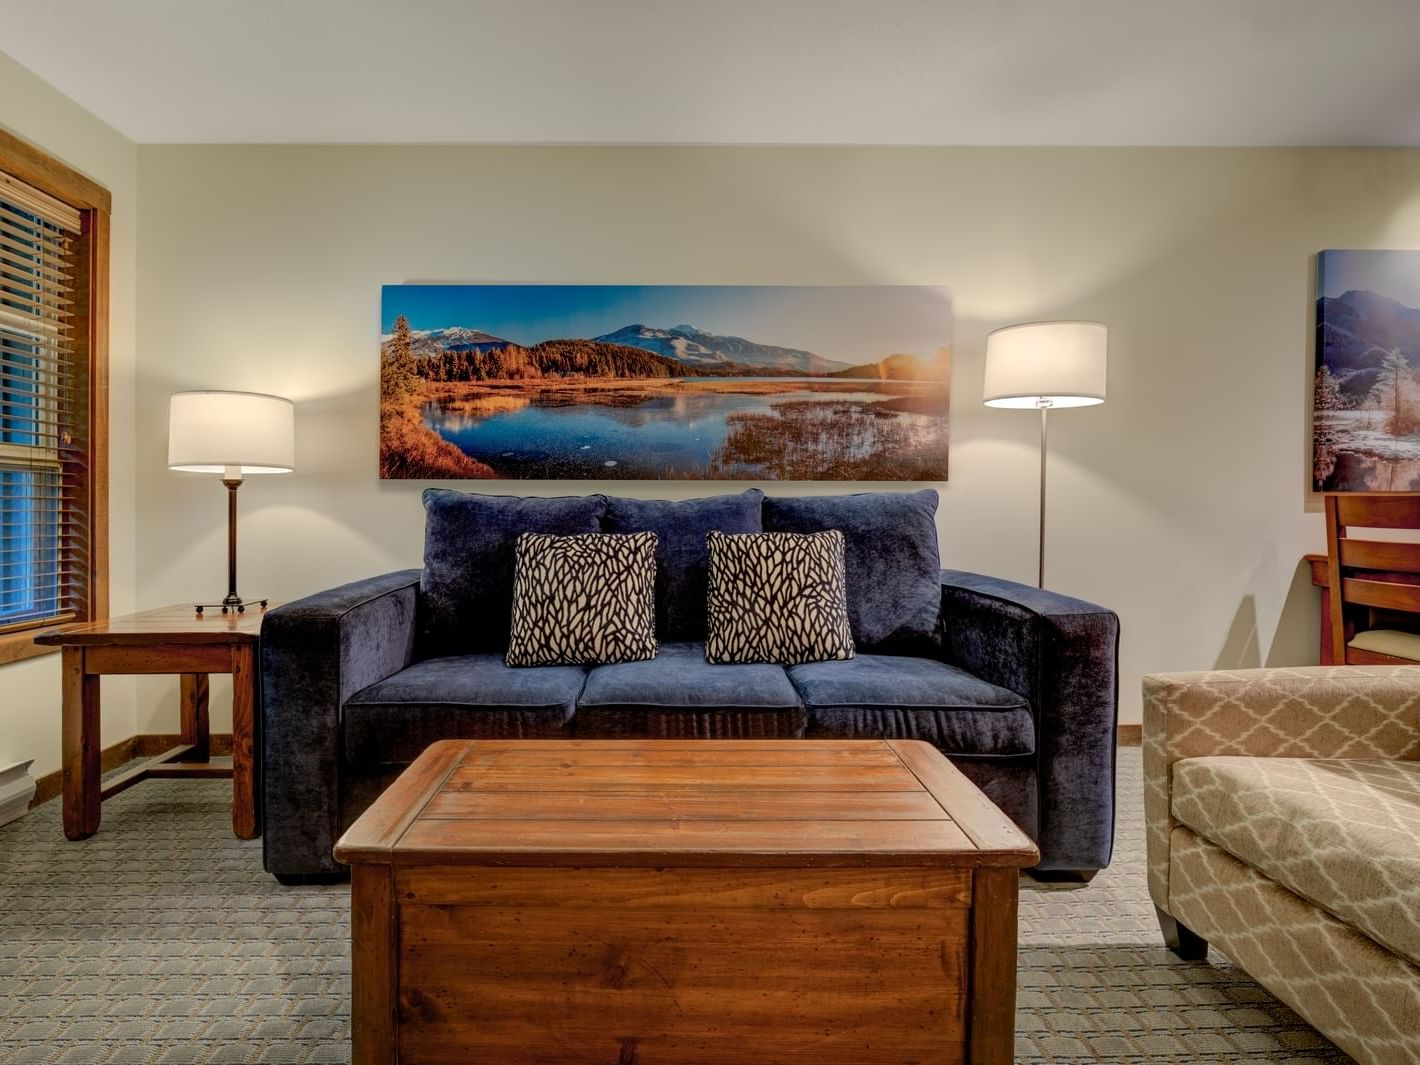 living room with blue sofa and wooden coffee table